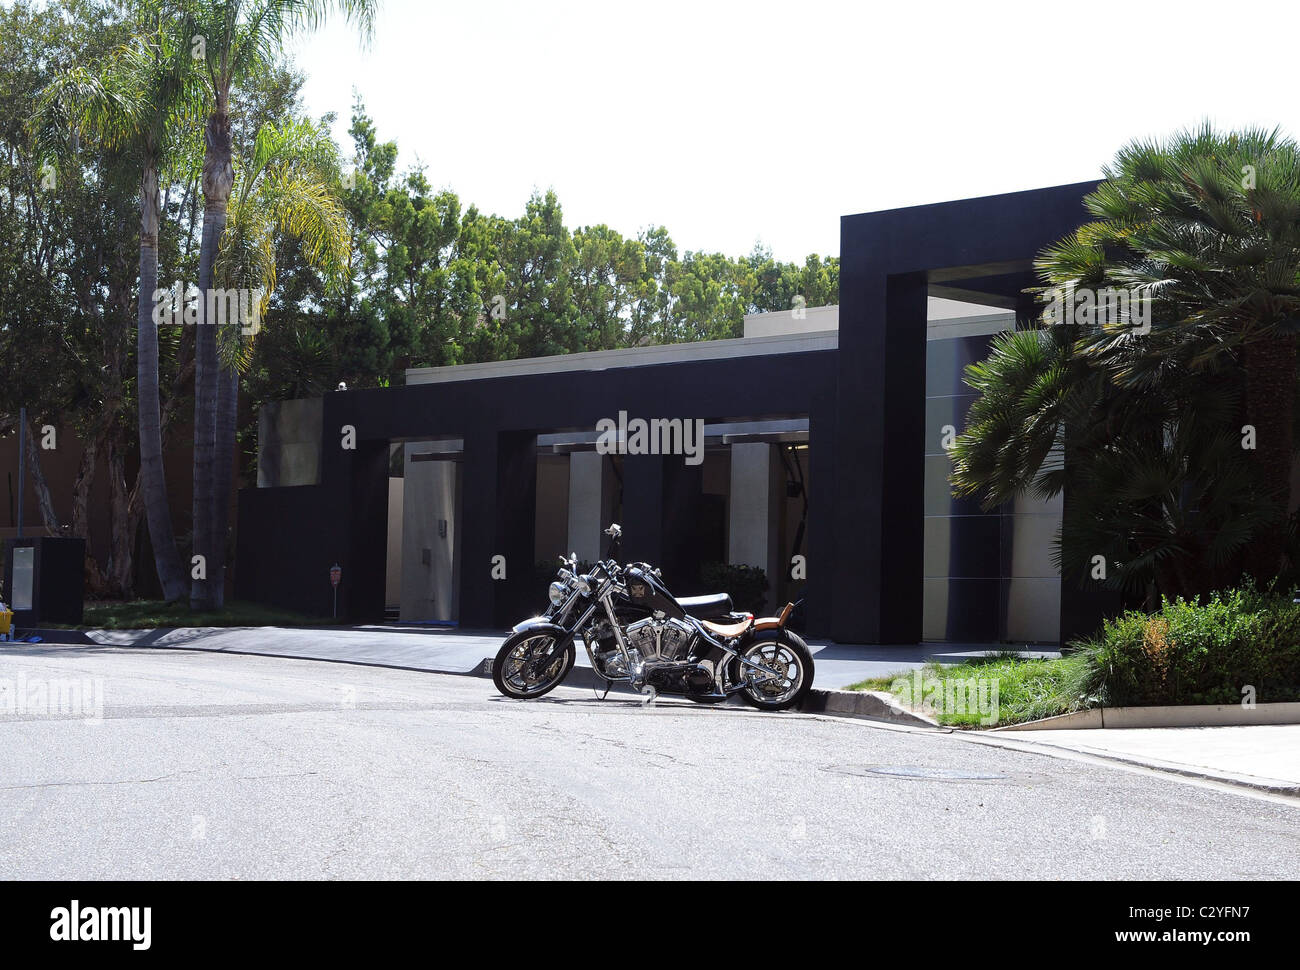 keanu reeves haus und motorrad los angeles kalifornien stockfoto bild 36255107 alamy. Black Bedroom Furniture Sets. Home Design Ideas